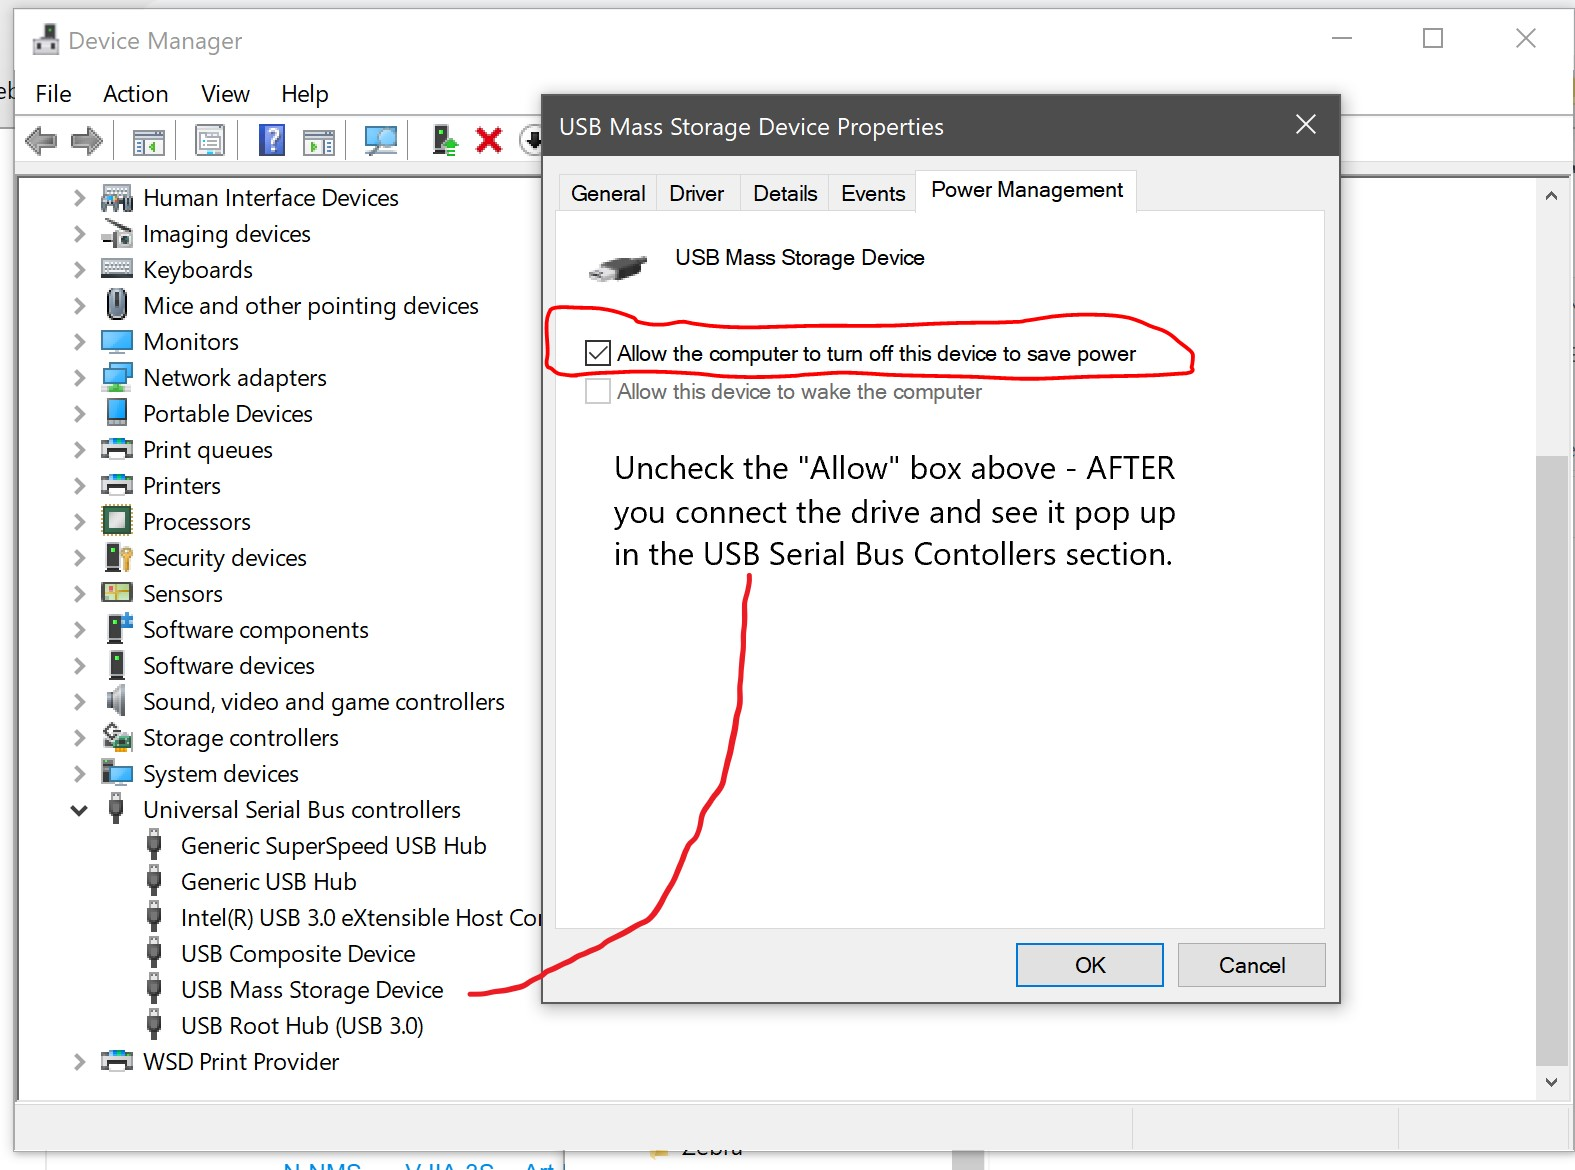 Resolve Apricorn Usb 3 0 Disconnecting In Windows 10 Surface Microsoft Community